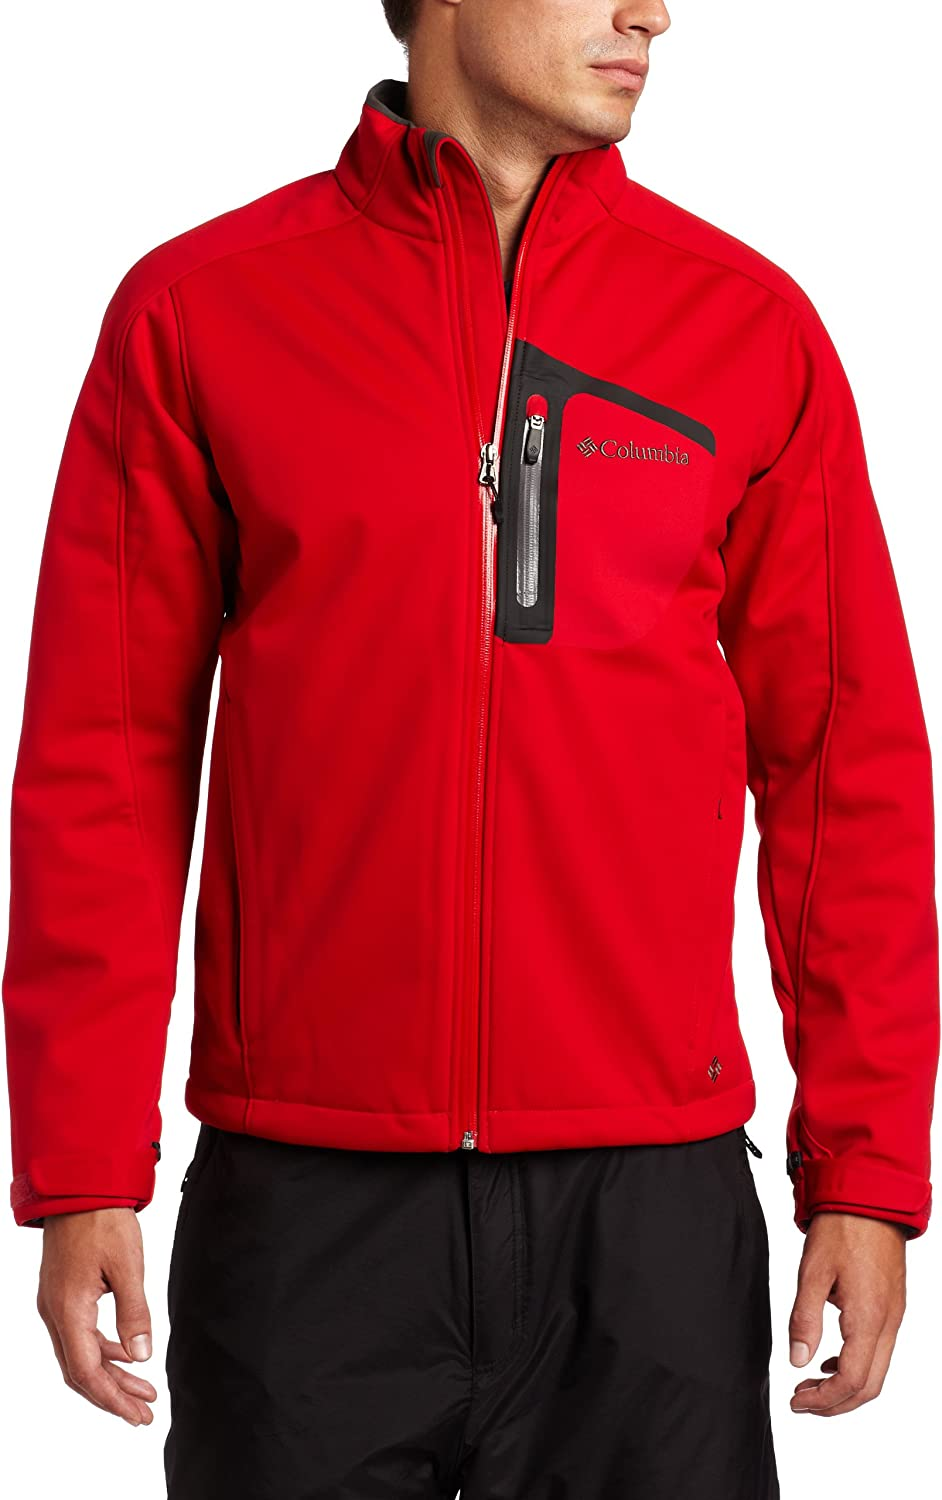 Columbia Men's Supah Softshell Buttah Max 60% OFF Selling and selling Jacket